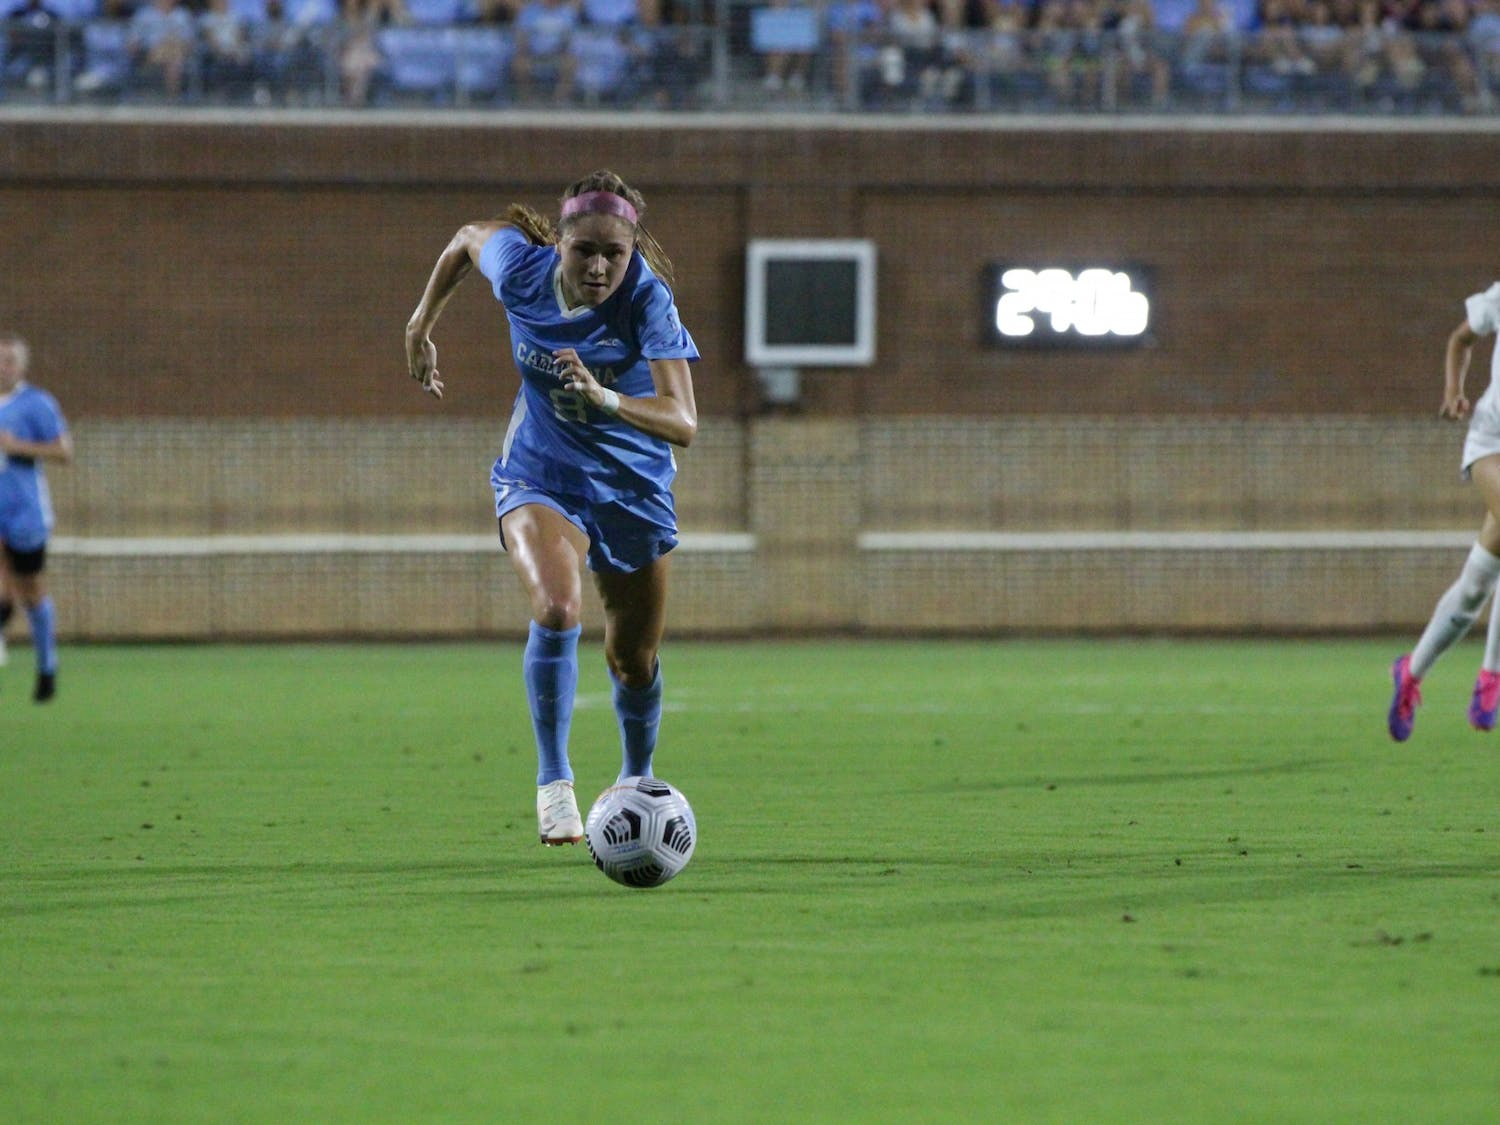 UNC Sophomore forward Emily Moxley (8) runs with the ball during the Duke vs UNC soccer game on Sept. 17. The Tar Heels lost 1-0.